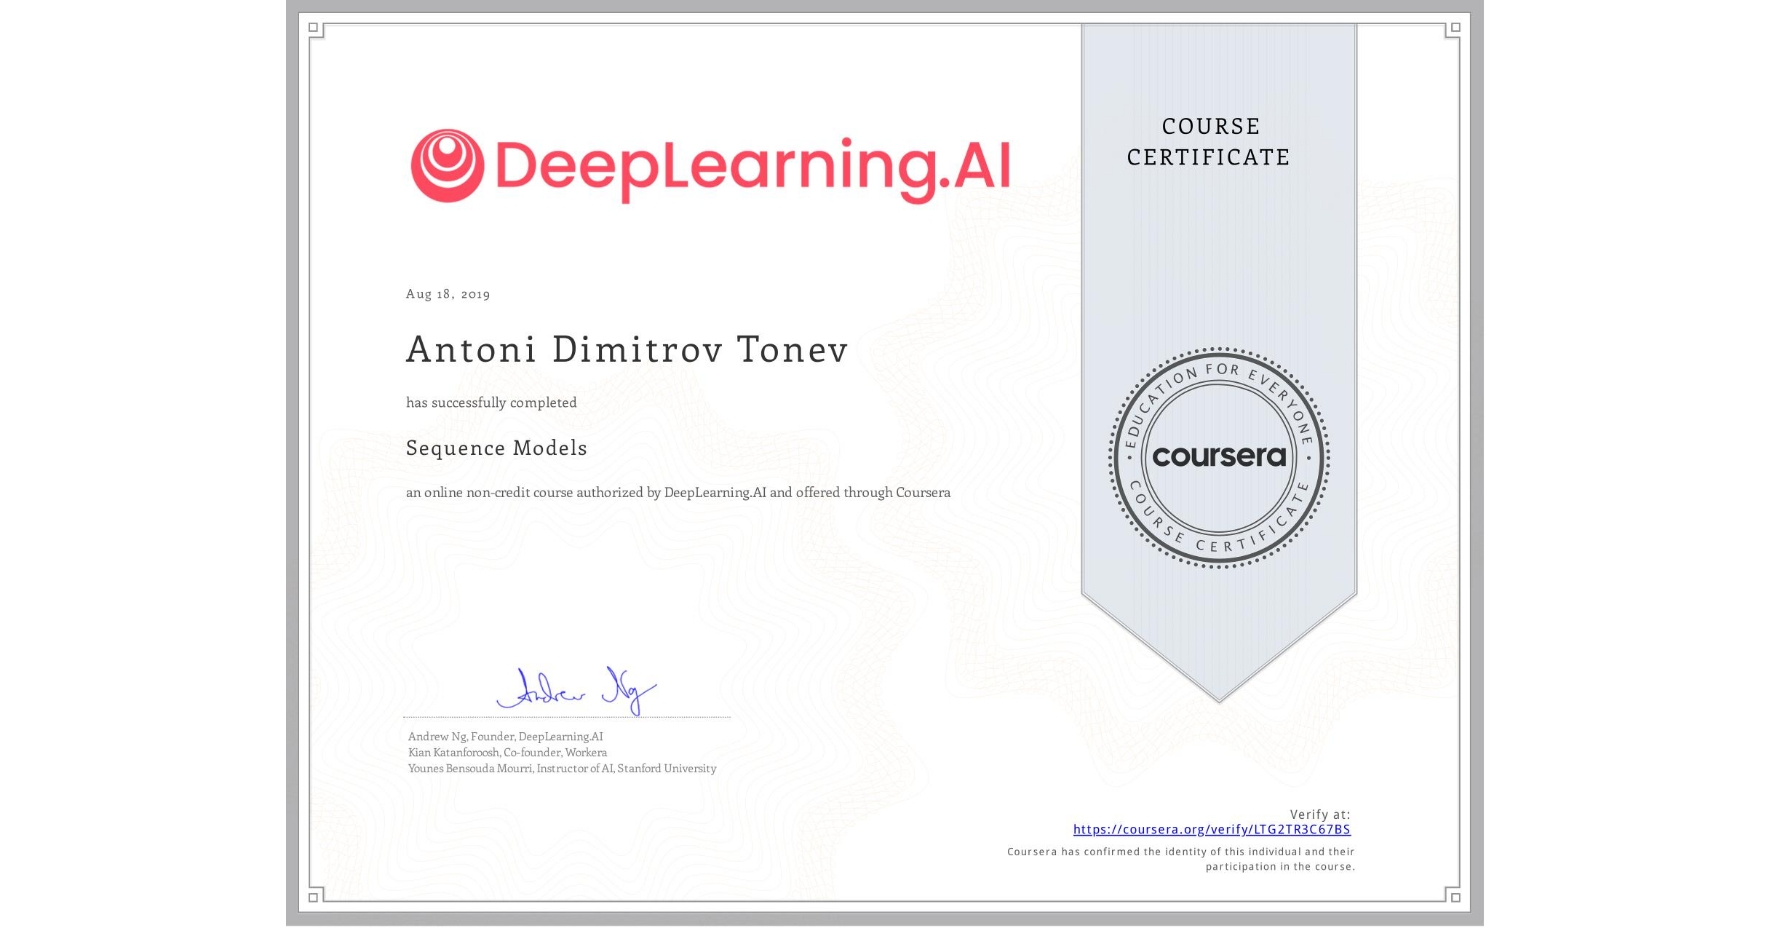 View certificate for Antoni Dimitrov Tonev, Sequence Models, an online non-credit course authorized by DeepLearning.AI and offered through Coursera